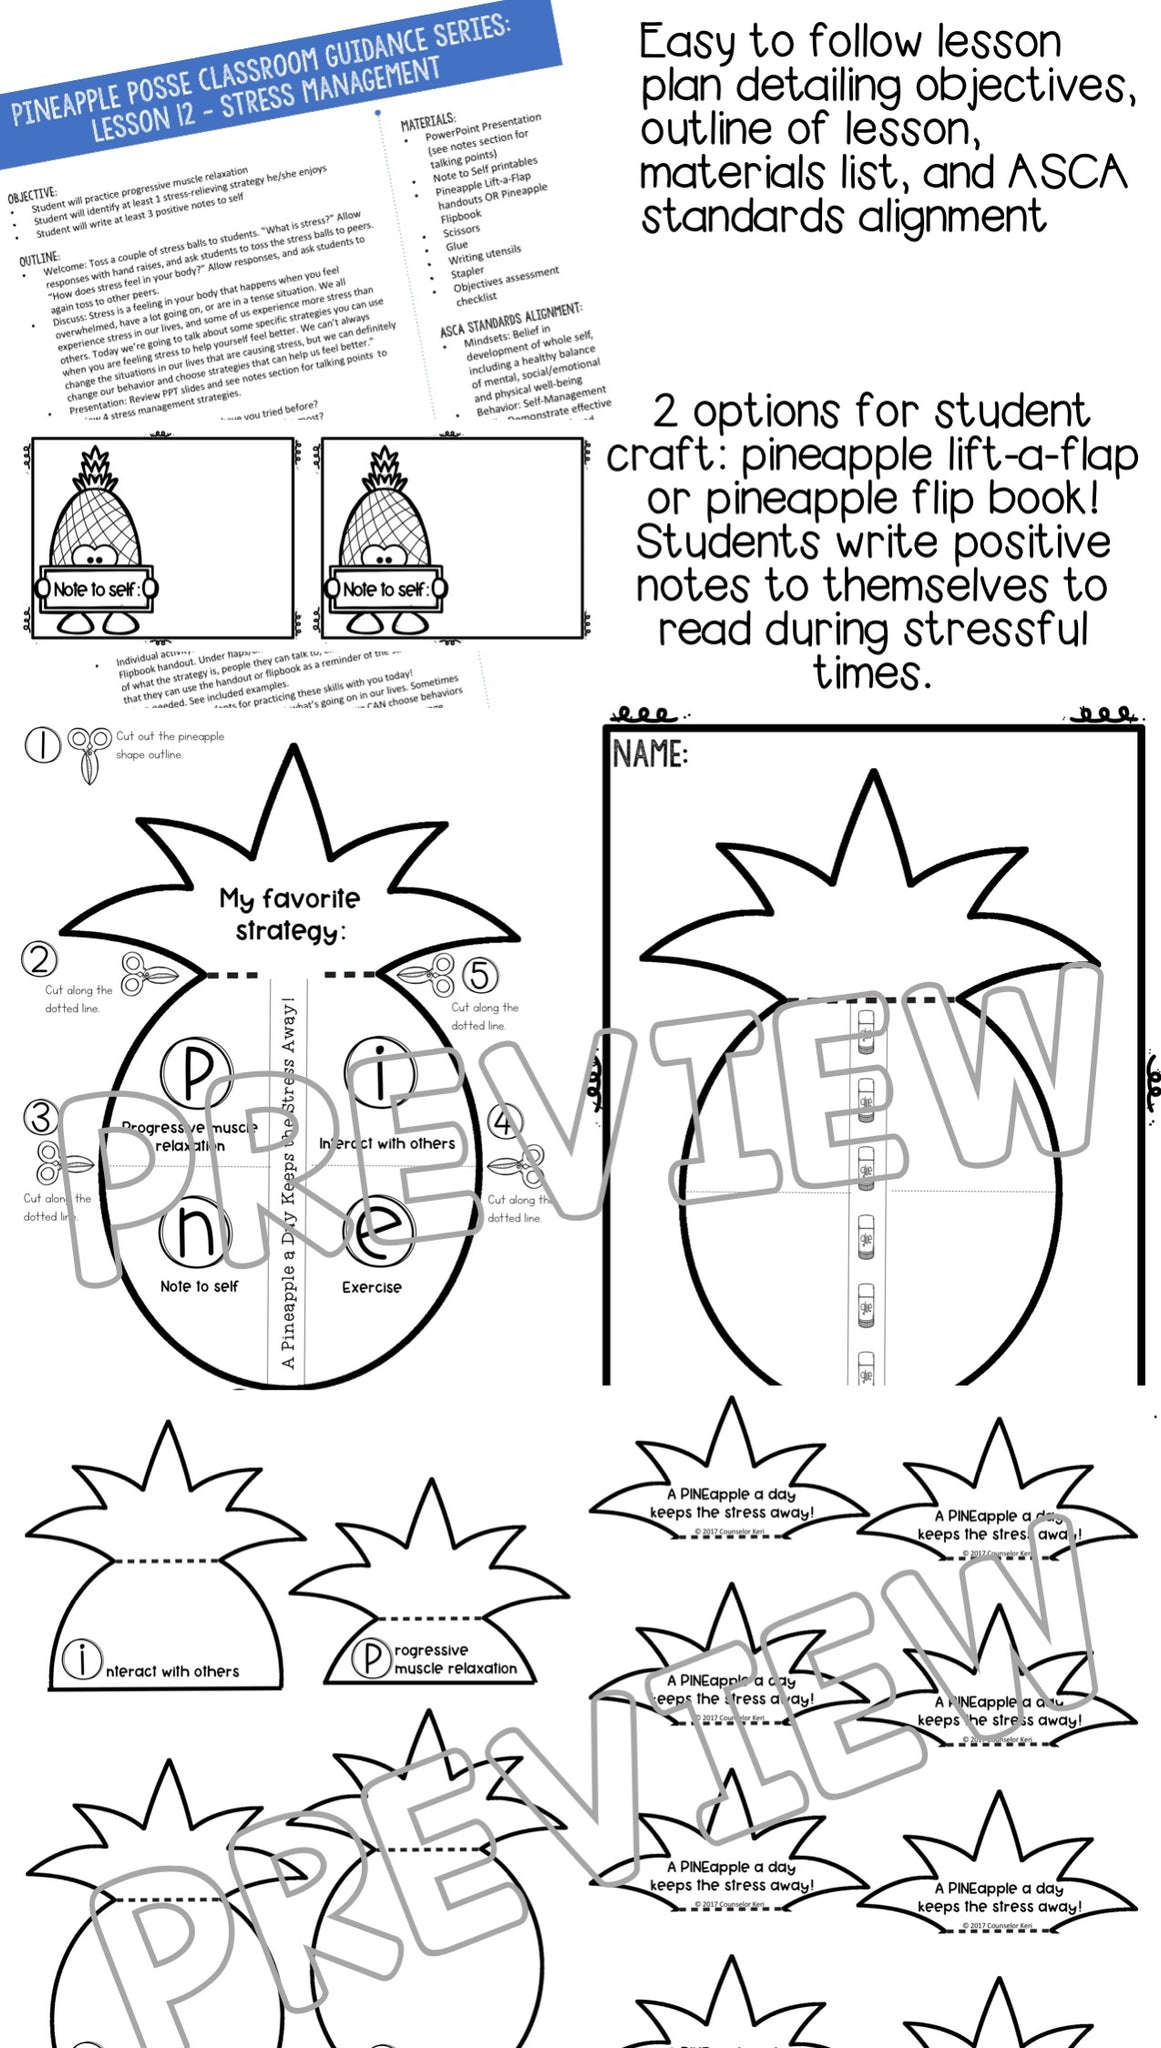 Stress Management Classroom Guidance Lesson for Elementary